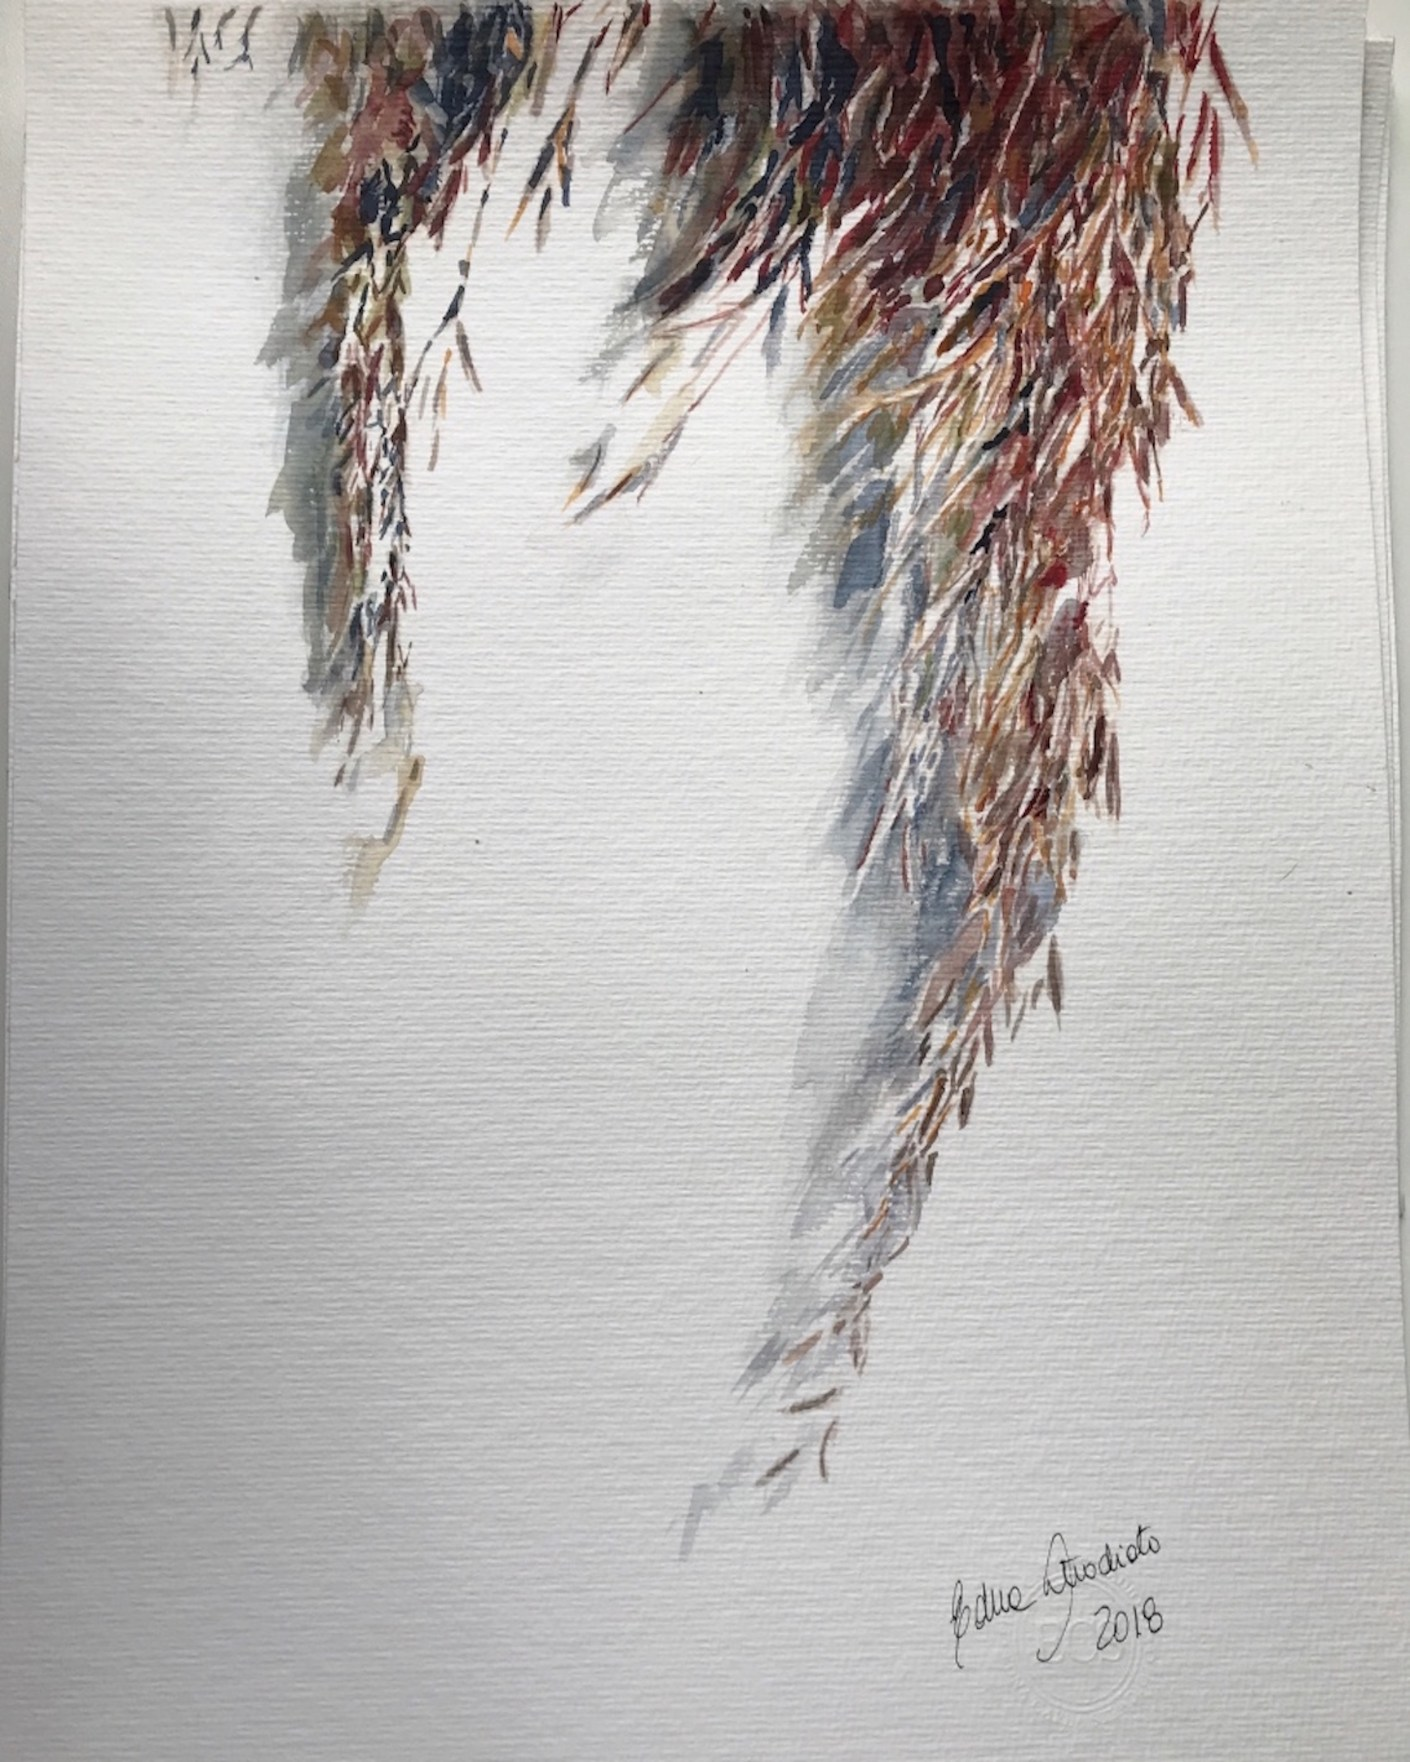 pampas grass 19_watercolor in hahnemuhle 36x48cm 425 gsm_Edna Carla Stradioto 2018